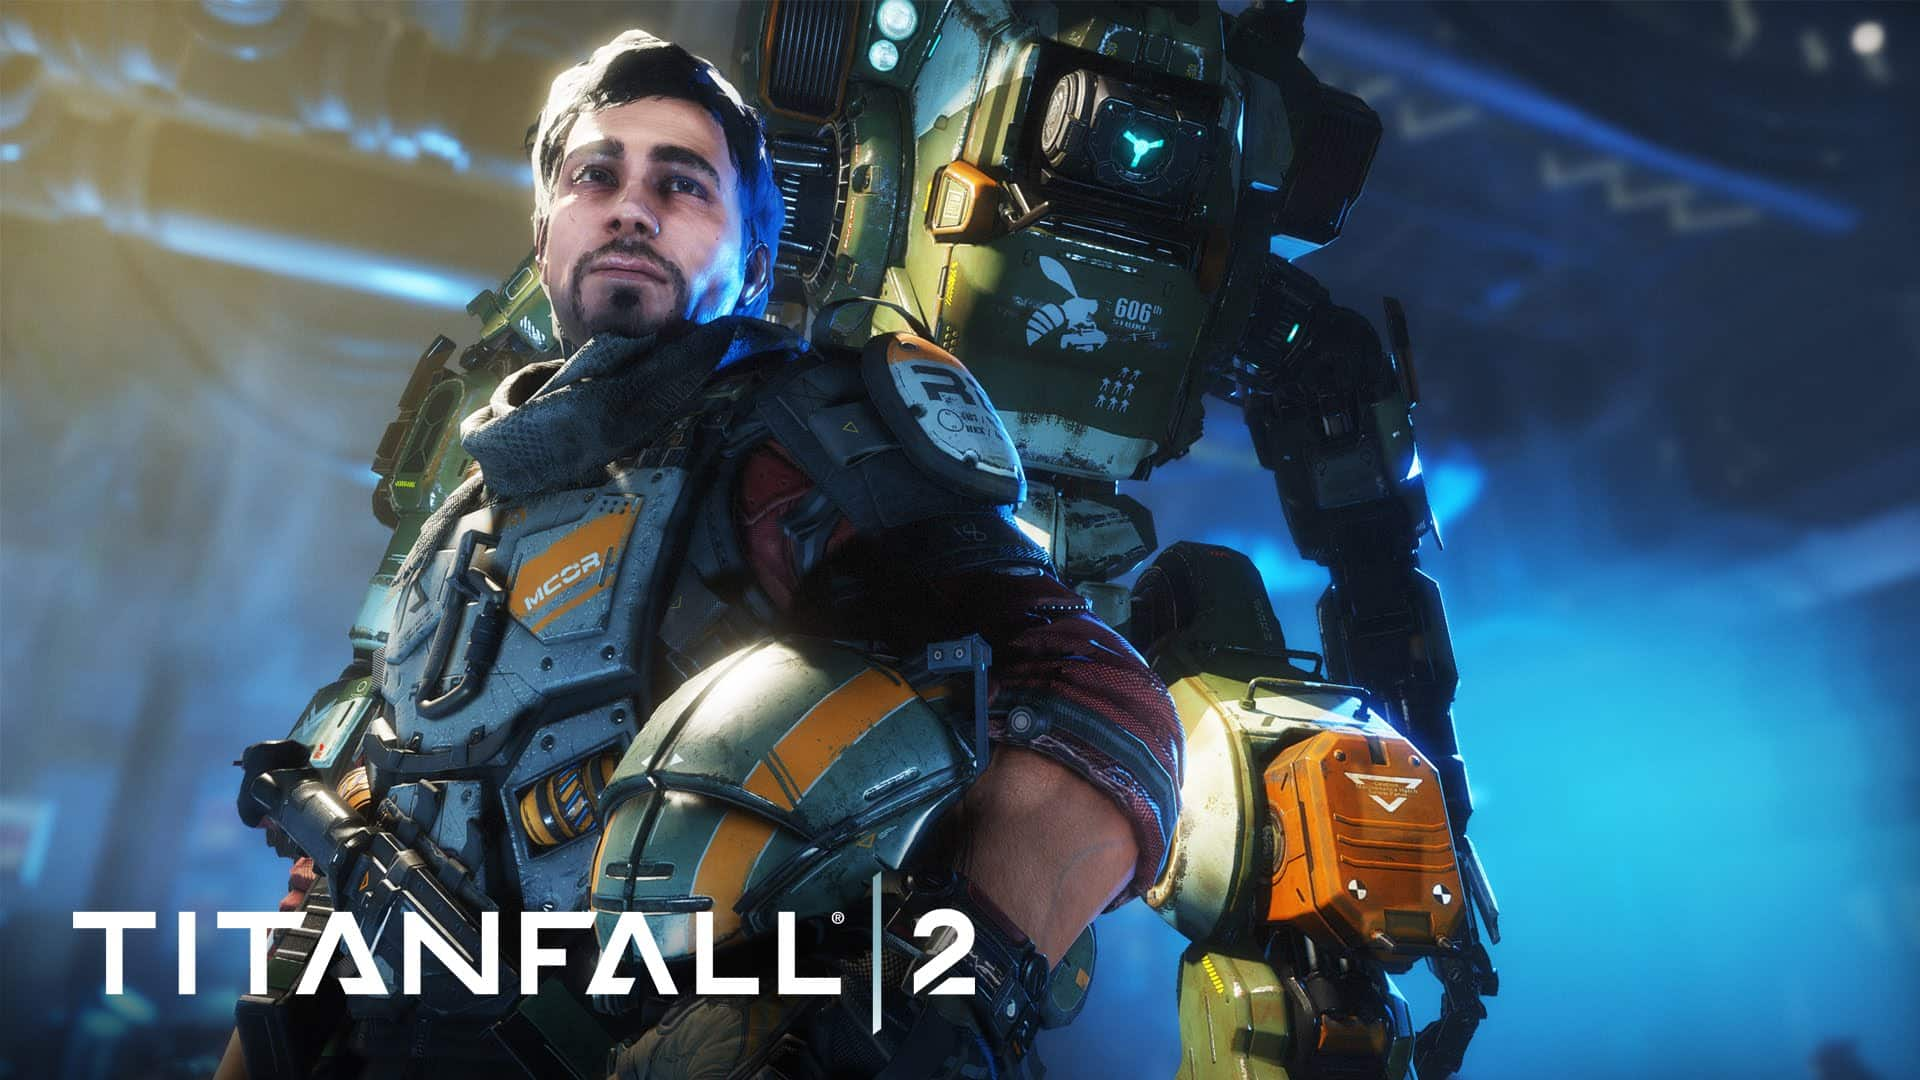 EA Titanfall 2 - The Guy Blog